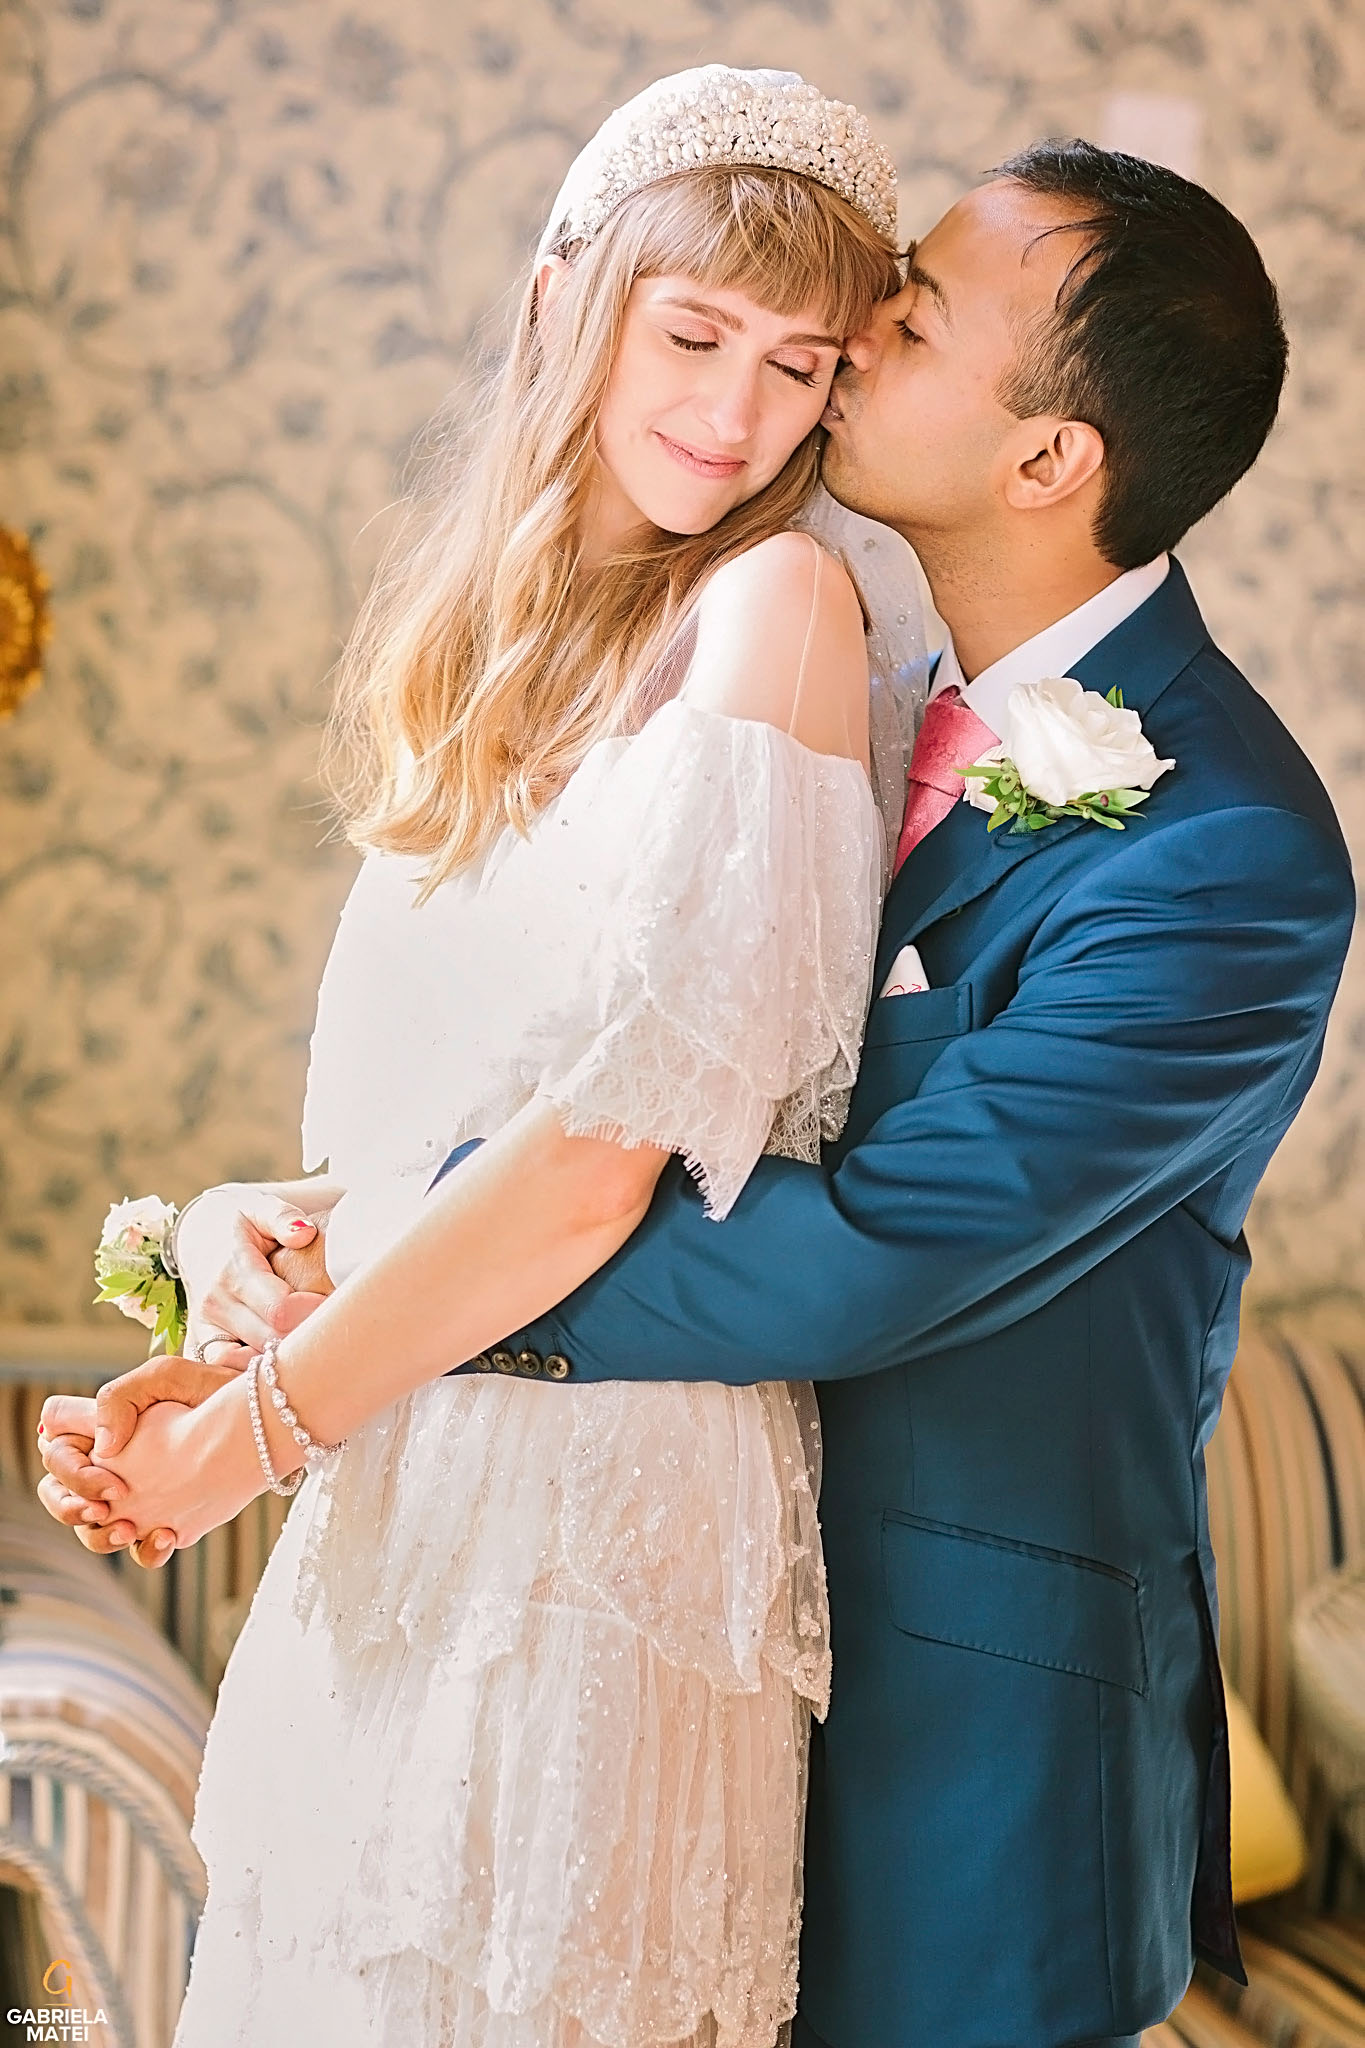 Couple portrait during wedding day at The Ritz hotel in London